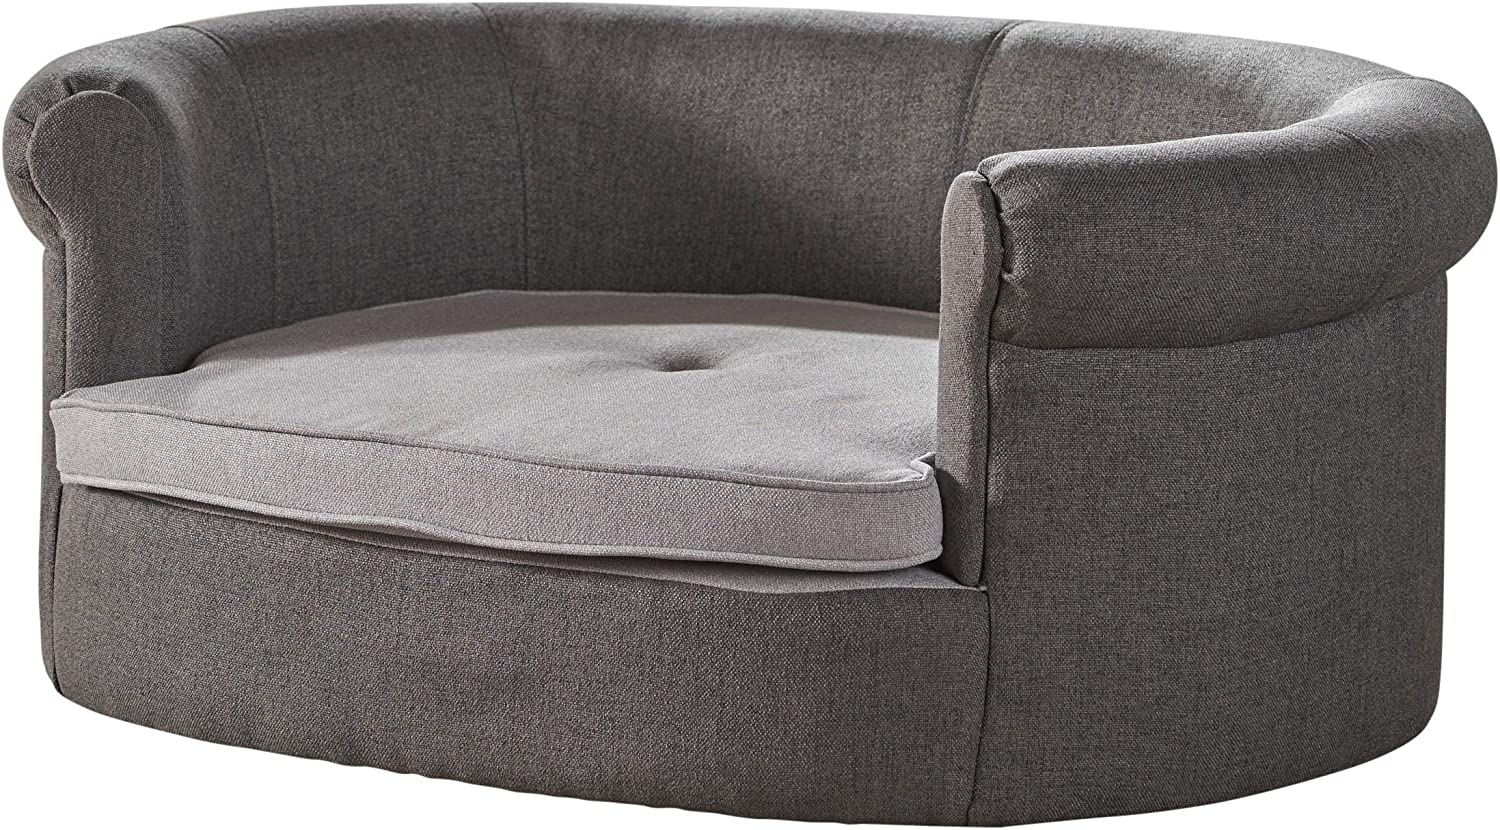 Christopher Knight Home Cassie Oval Charcoal Light Grey Fabric Dog Sofa